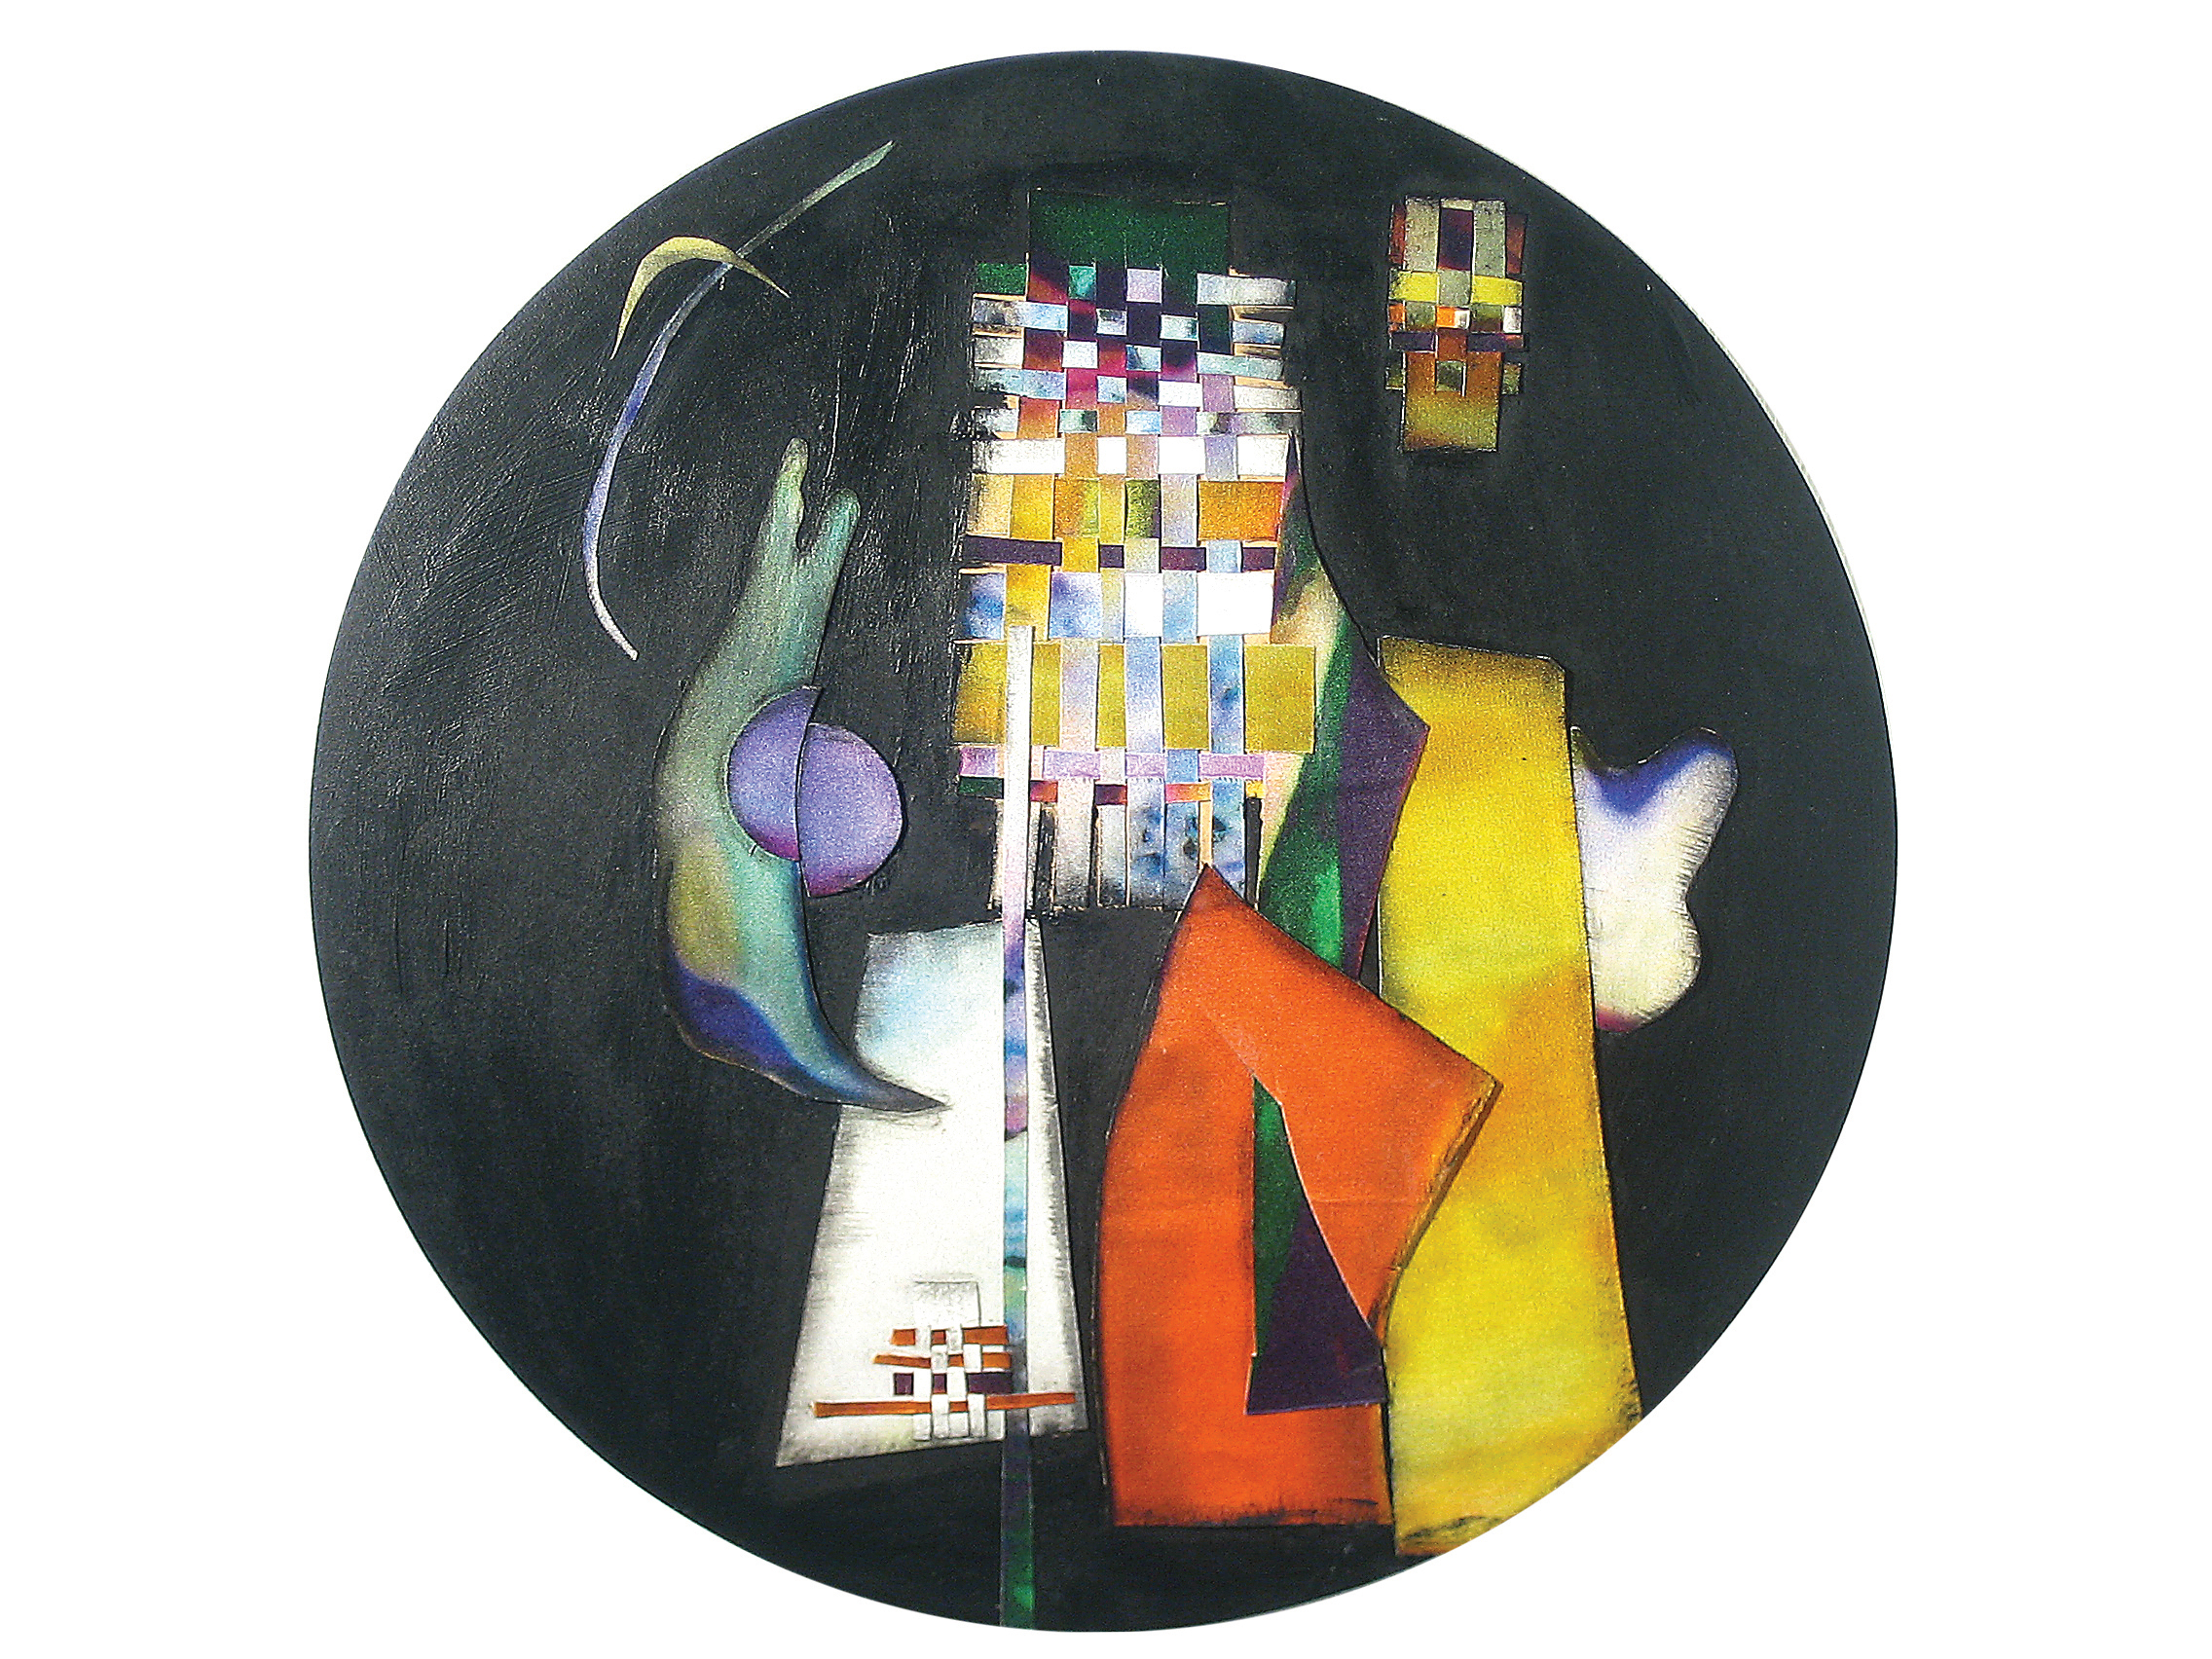 A church in the city, 지름25cm objet on wood._2006